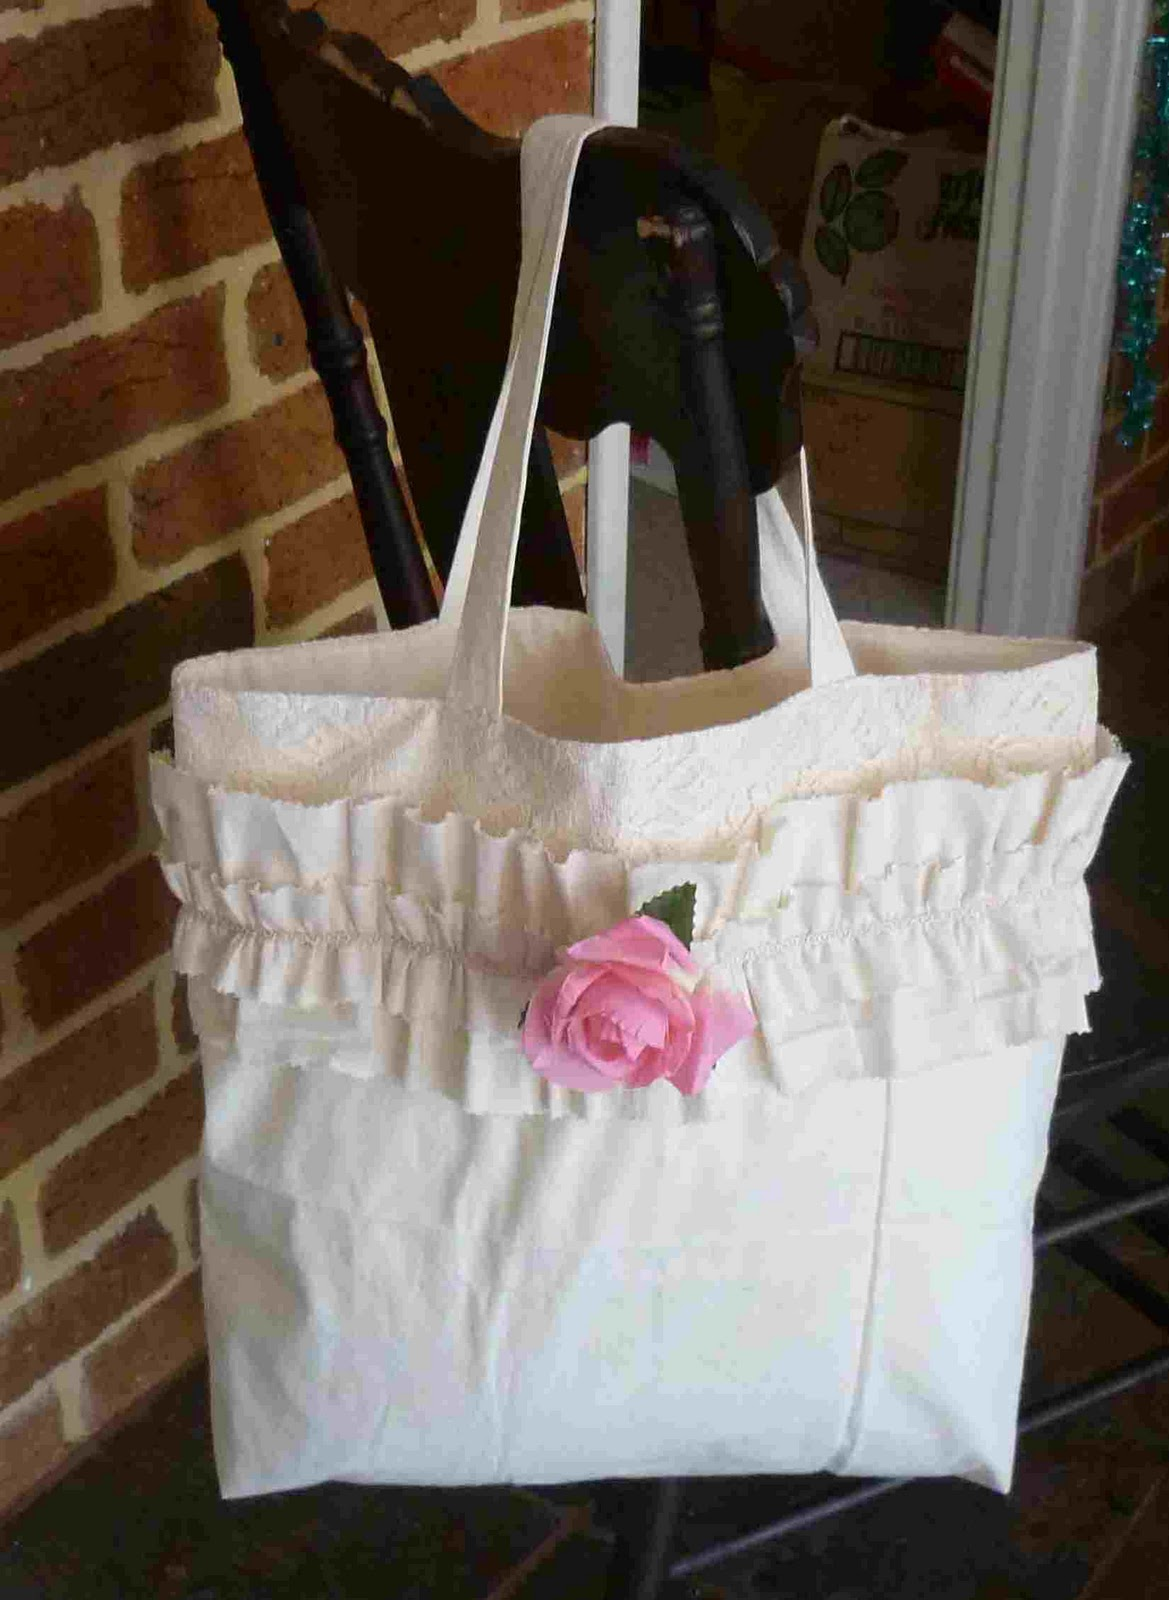 simpleliving calico double ruffle rose shabby chic bag rh simpleliving sherrie blogspot com